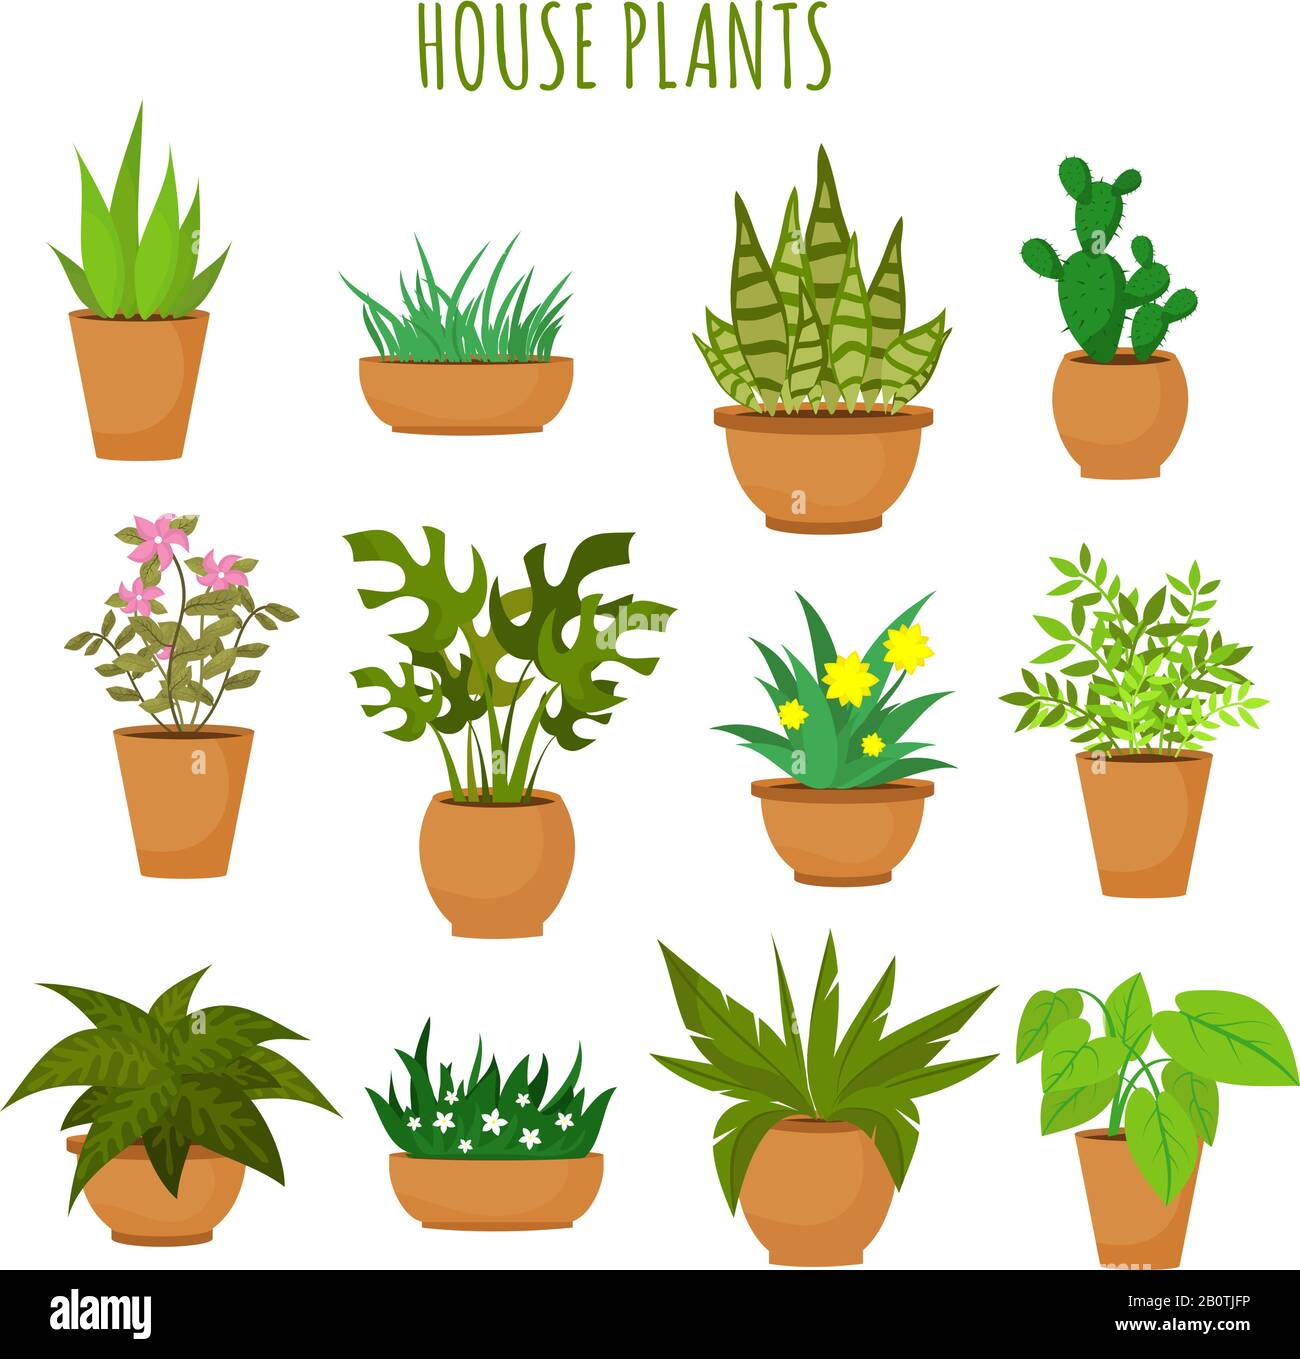 Indoor House Green Plants And Flowers Isolated On White Vector Set Green Plants In Pots Illustration Of Green Garden Flower Plant Stock Vector Image Art Alamy